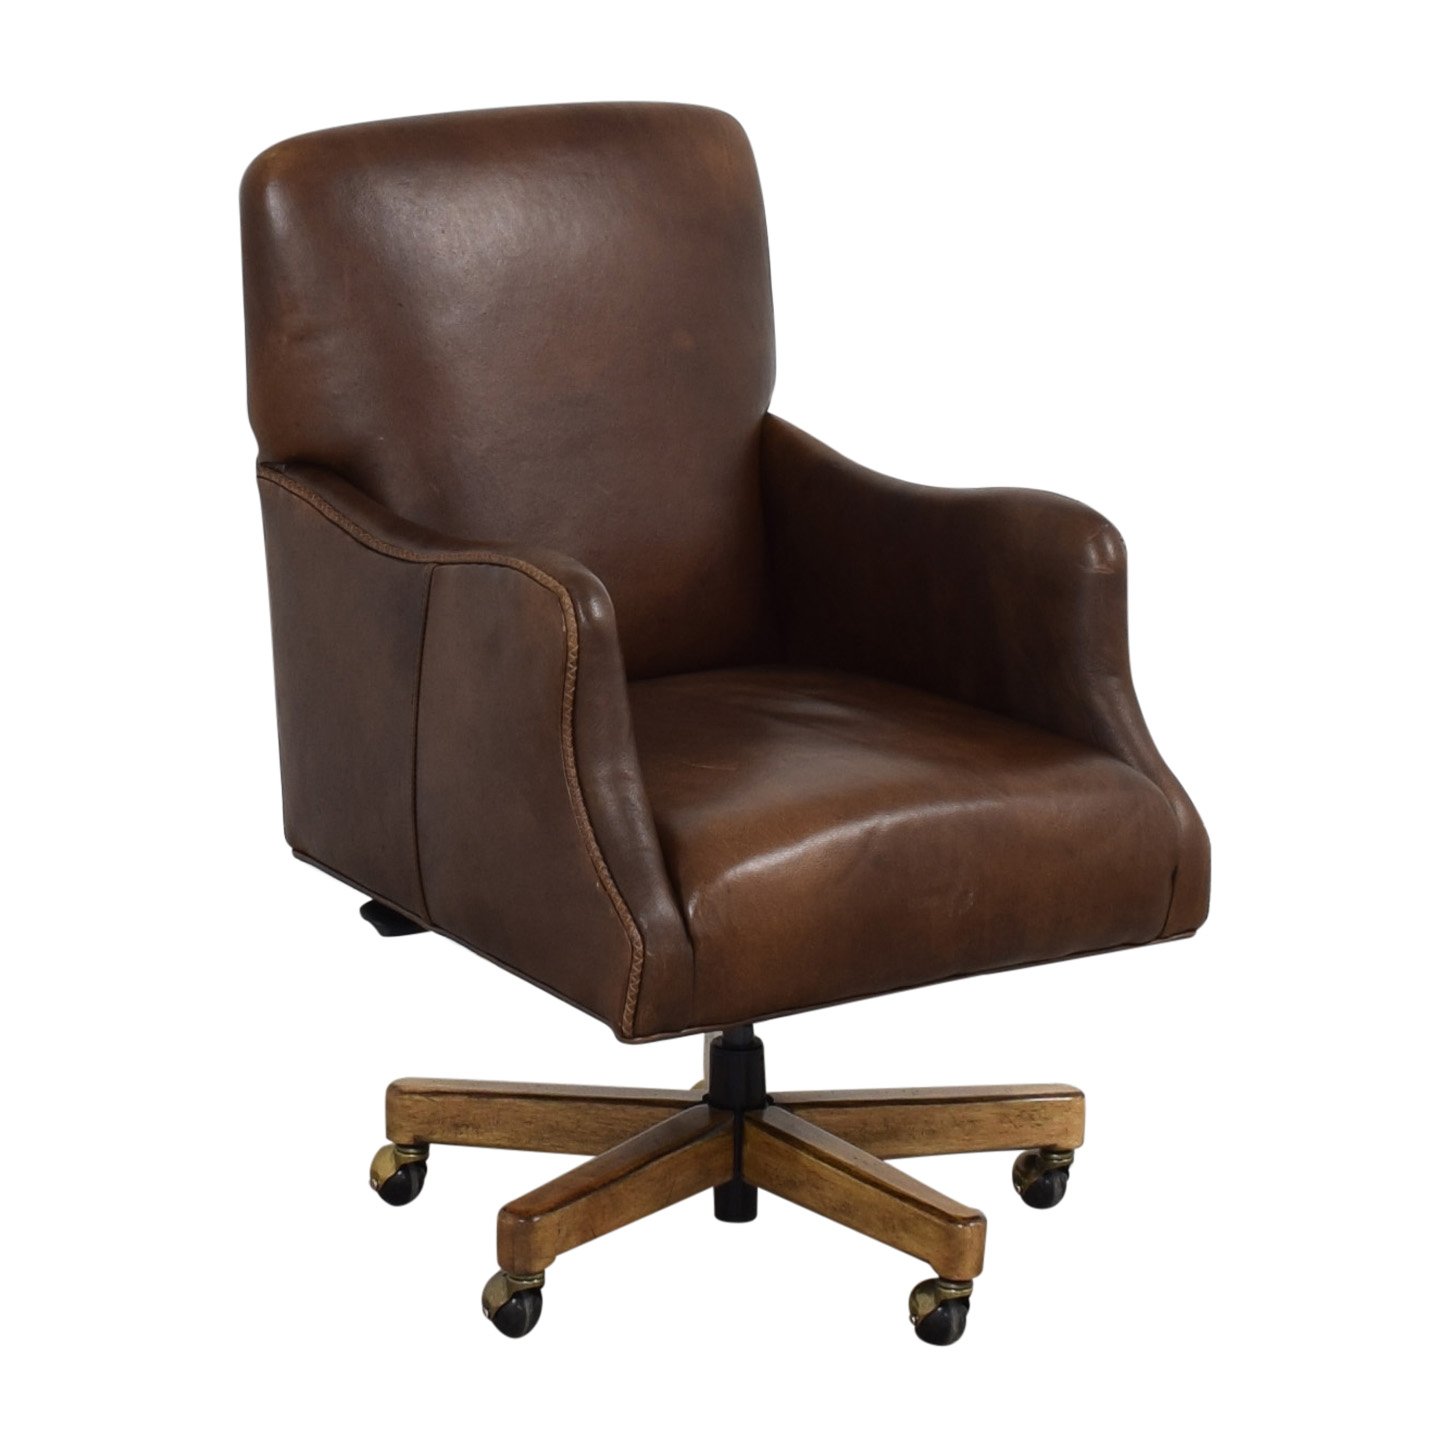 Hooker Furniture Hooker Furniture Office Chair Home Office Chairs